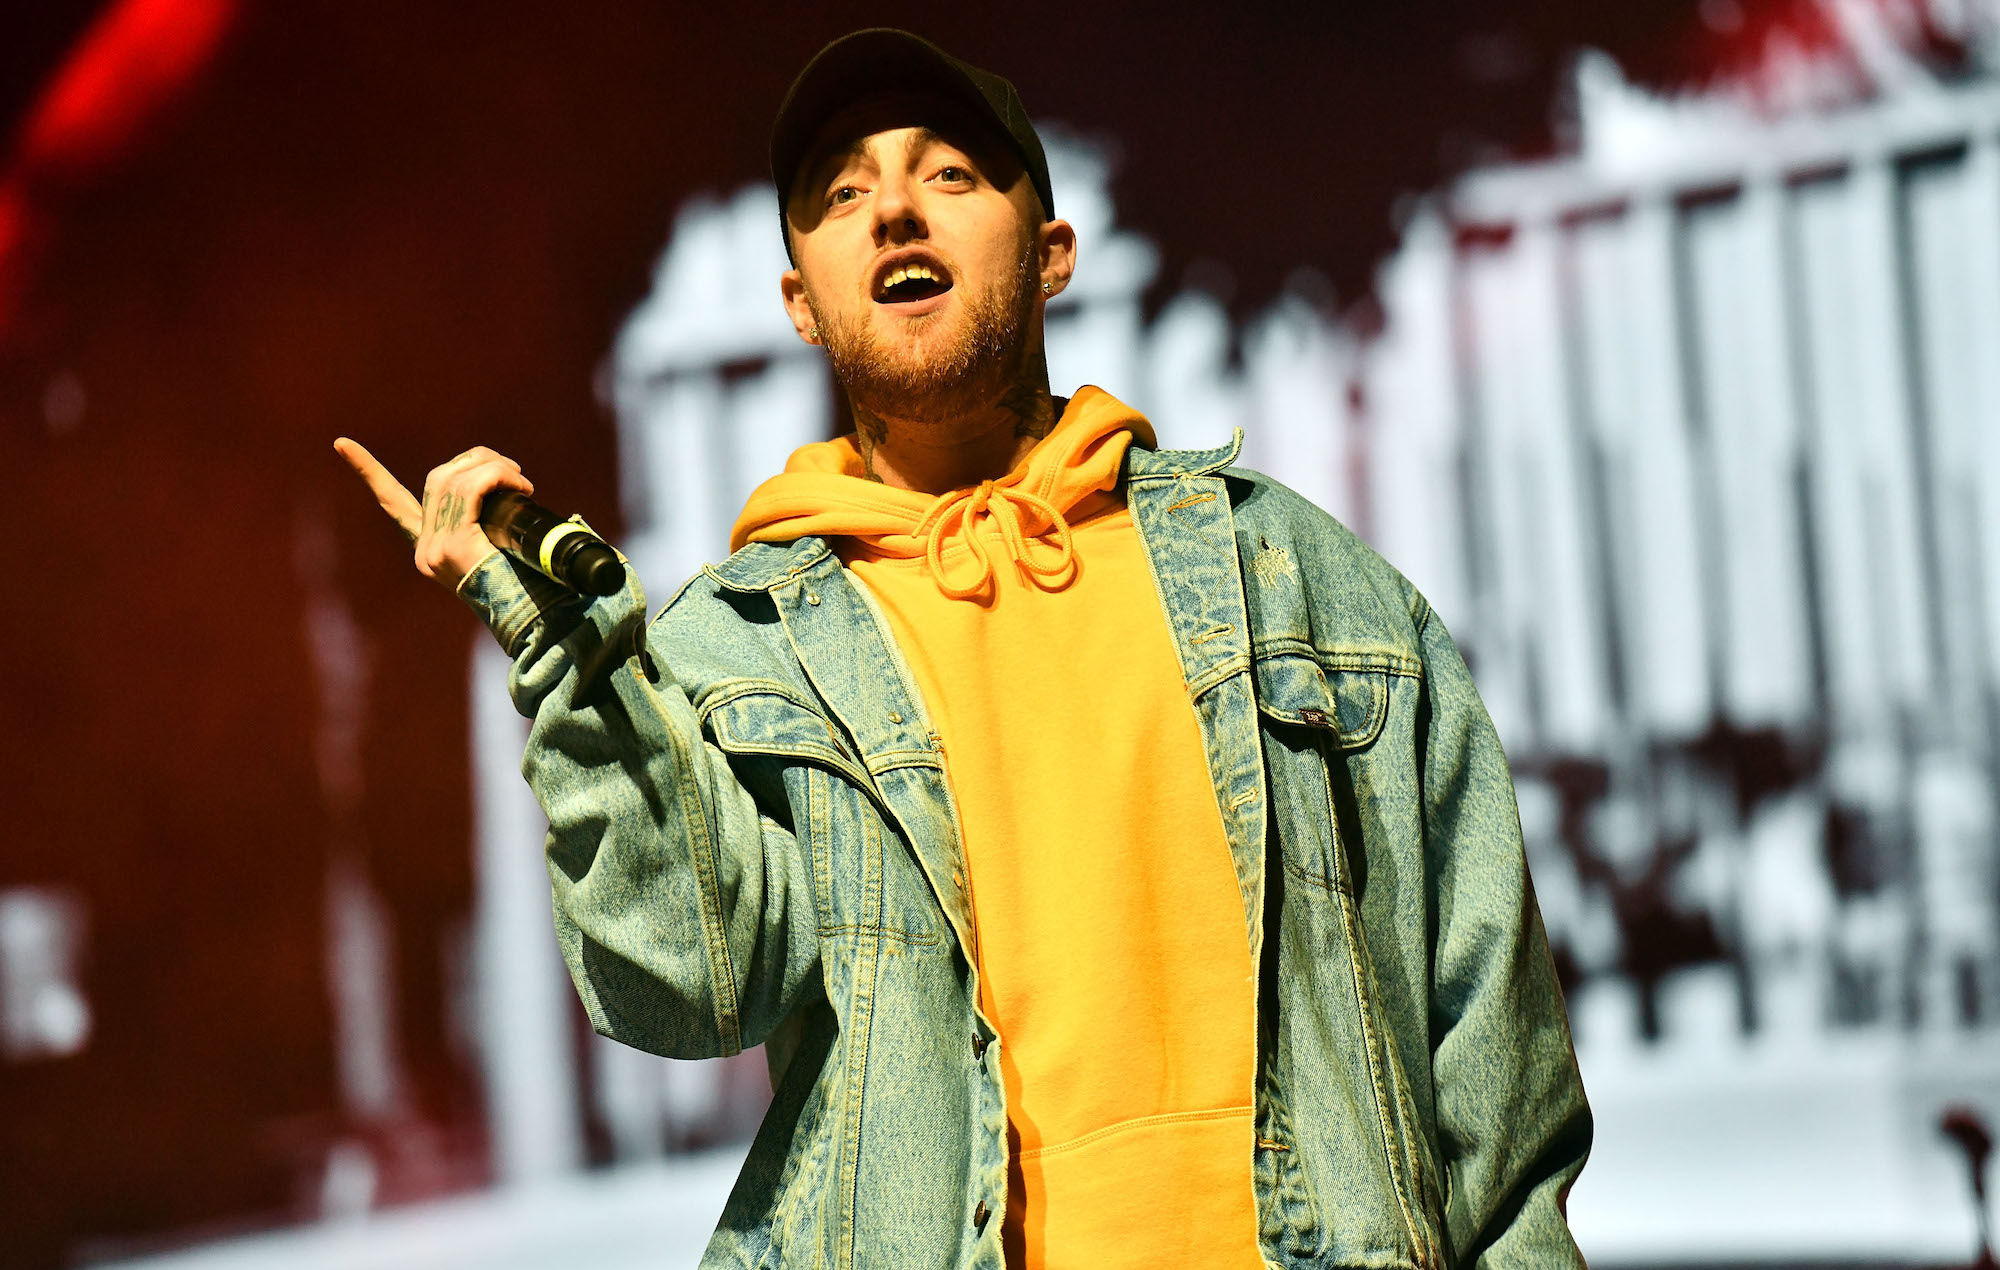 Mac Miller death: man charged in connection with the late